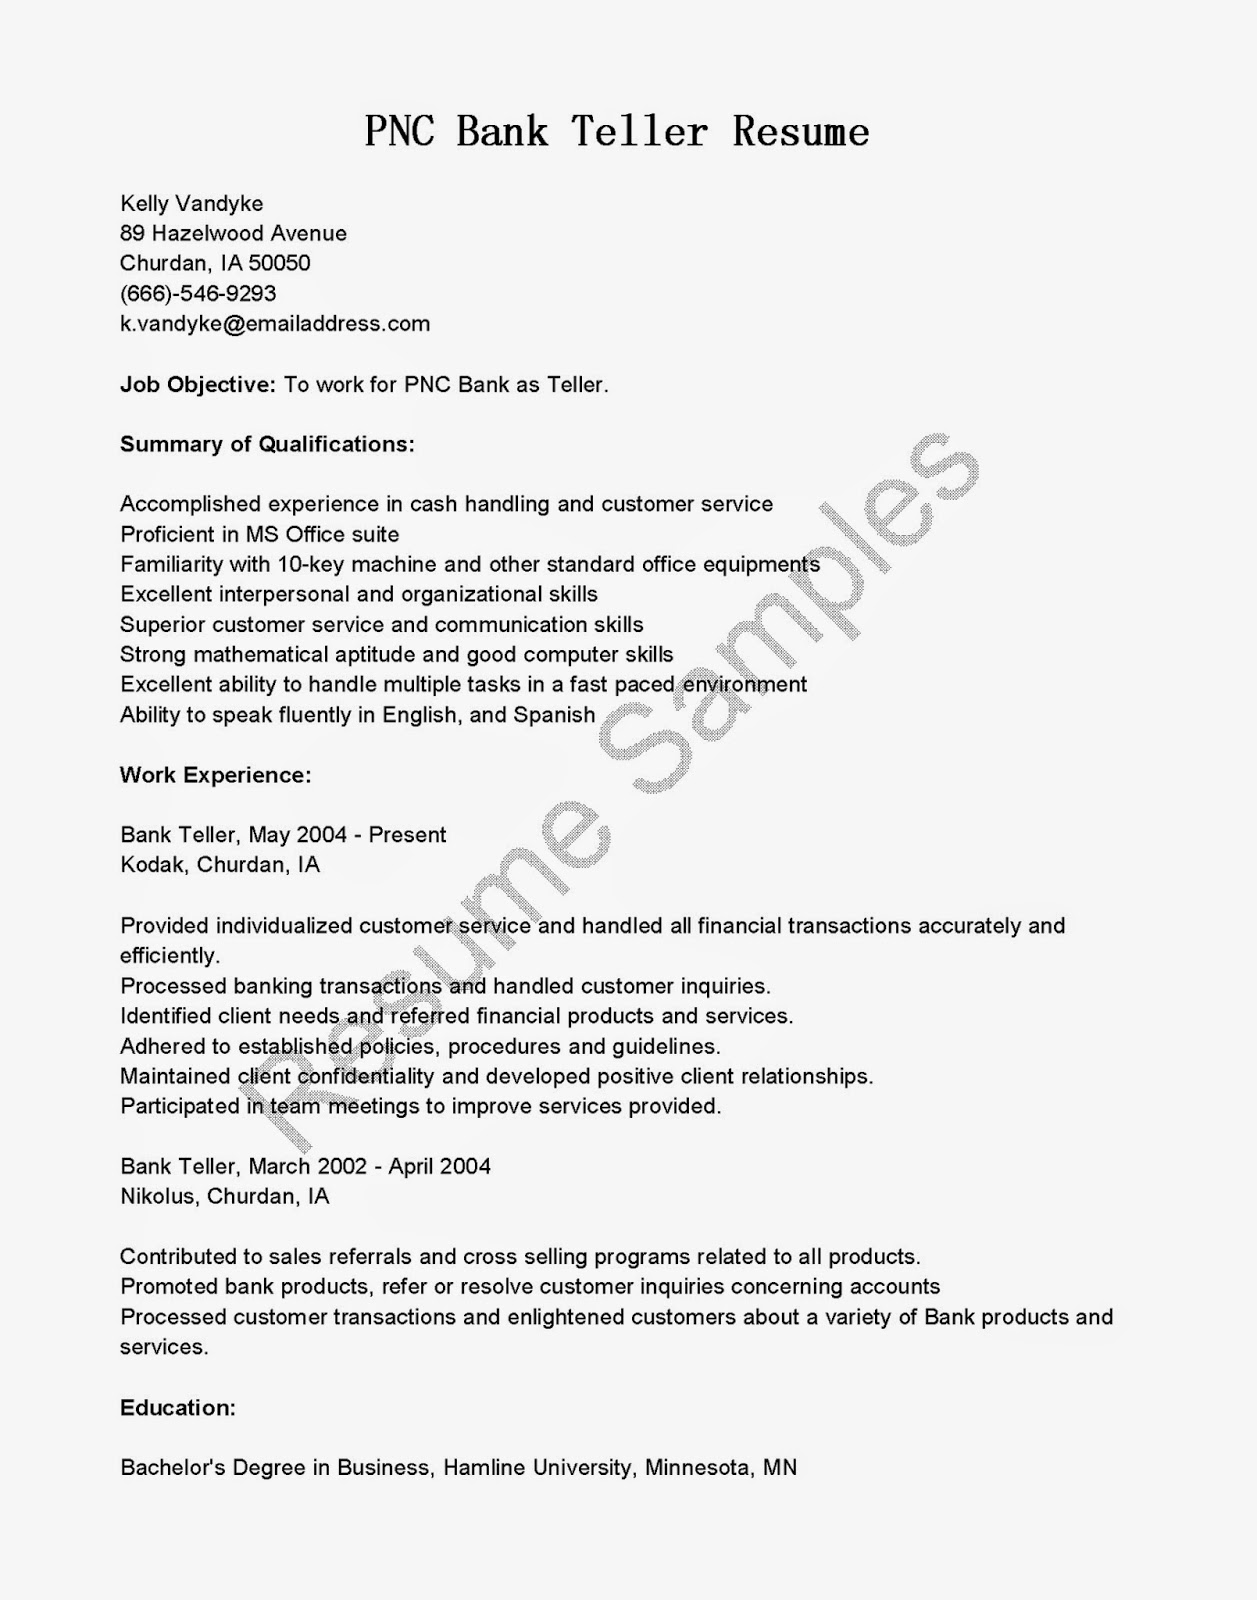 Sample Resume Objective Statements Bank Teller Bank Teller Resume Examples  Cover Letters And Resume  Bank Teller Duties For Resume